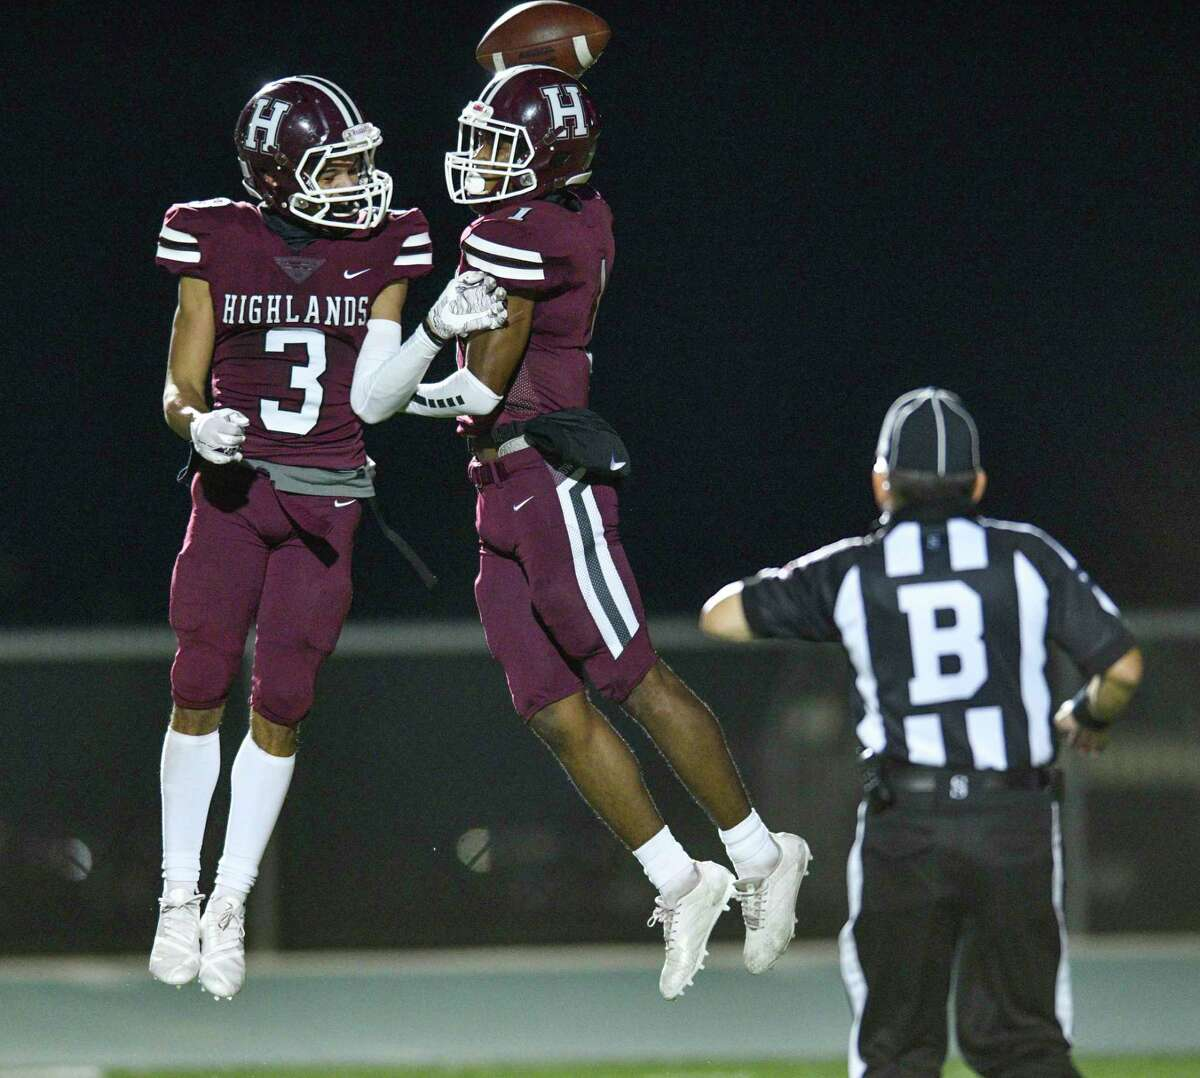 Highlands' Daaveion Holmes, right, celebrates with teammate Luis Ortiz (3) after scoring on a touchdown pass against Southwest Legacy during high school football playoffs action at Titan Stadium on Friday, Dec. 11, 2020. The ball fell incomplete.